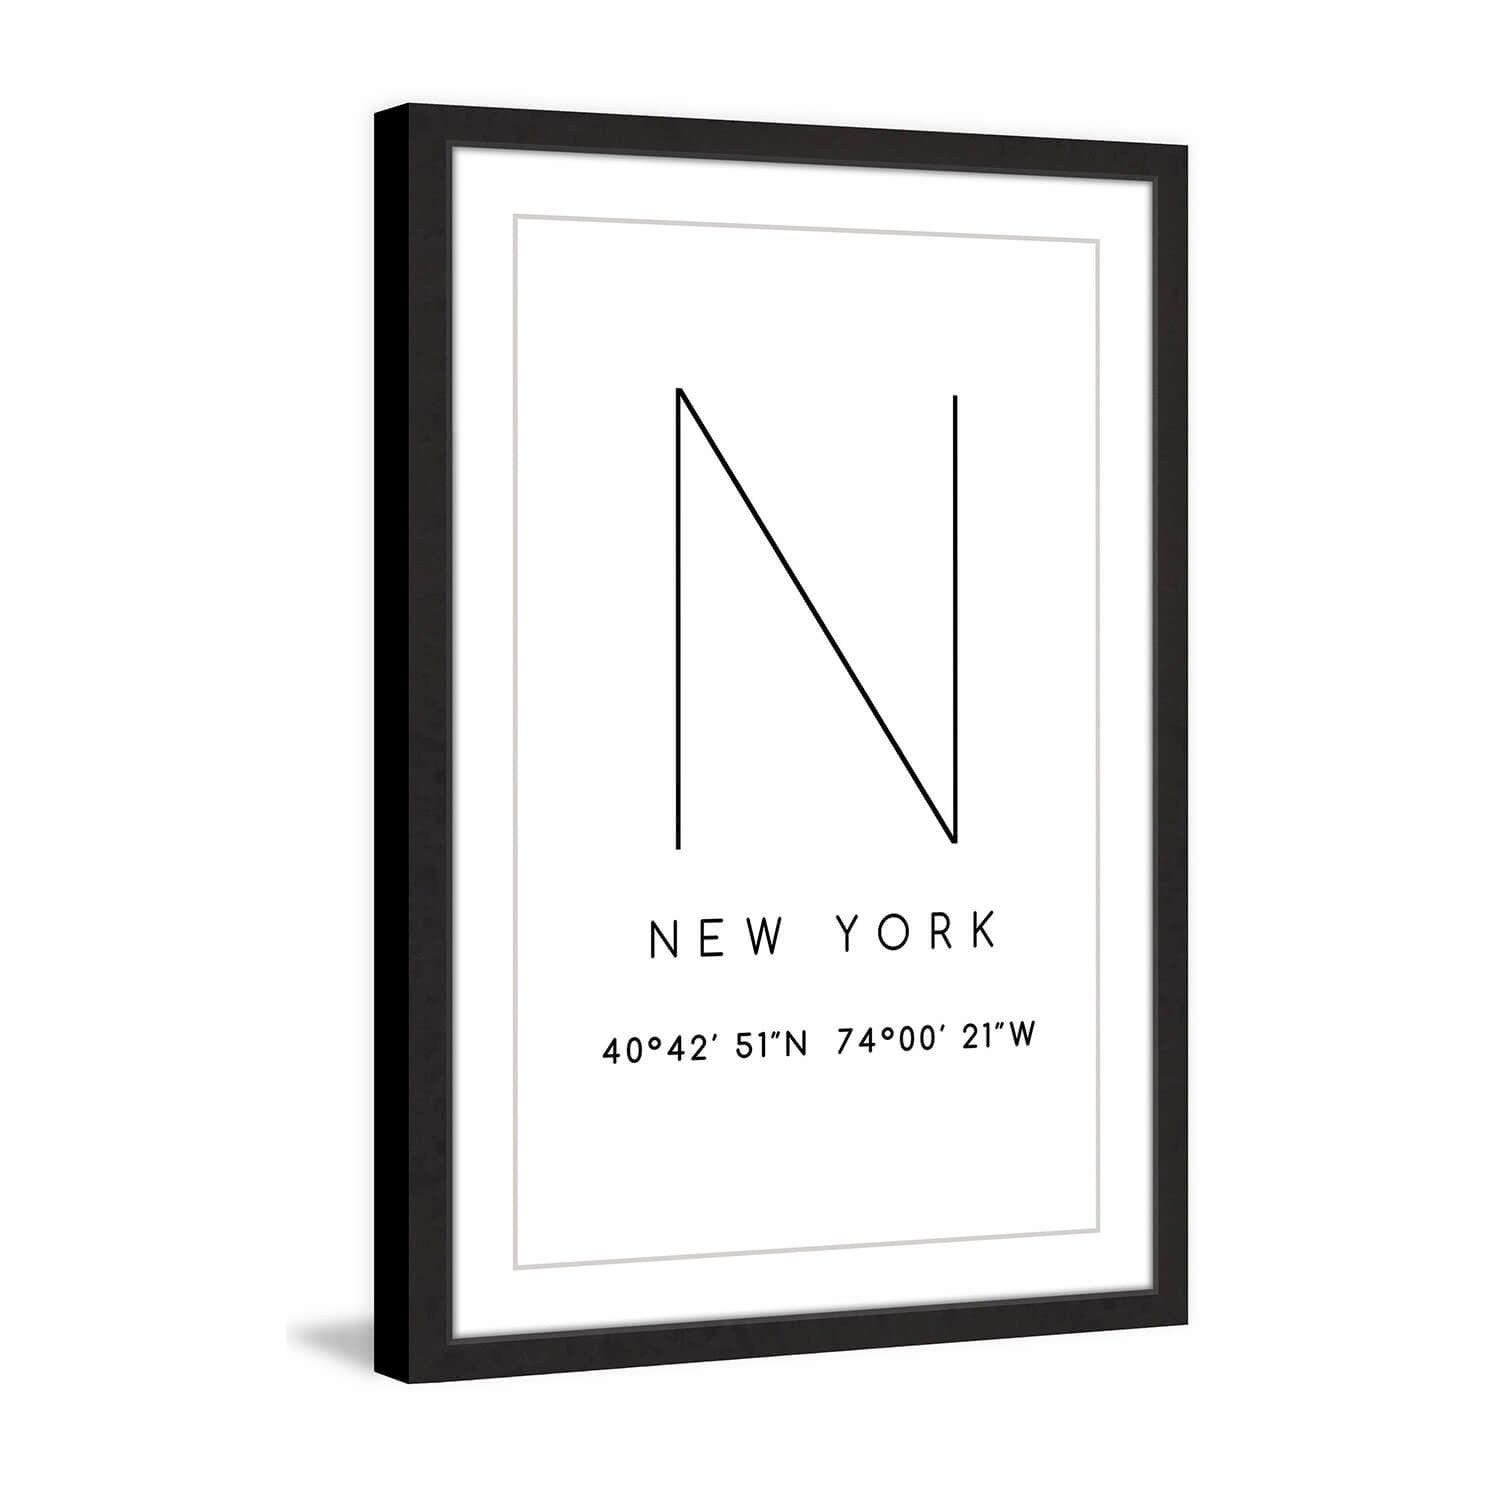 Framed New York Coordinates - 12x18